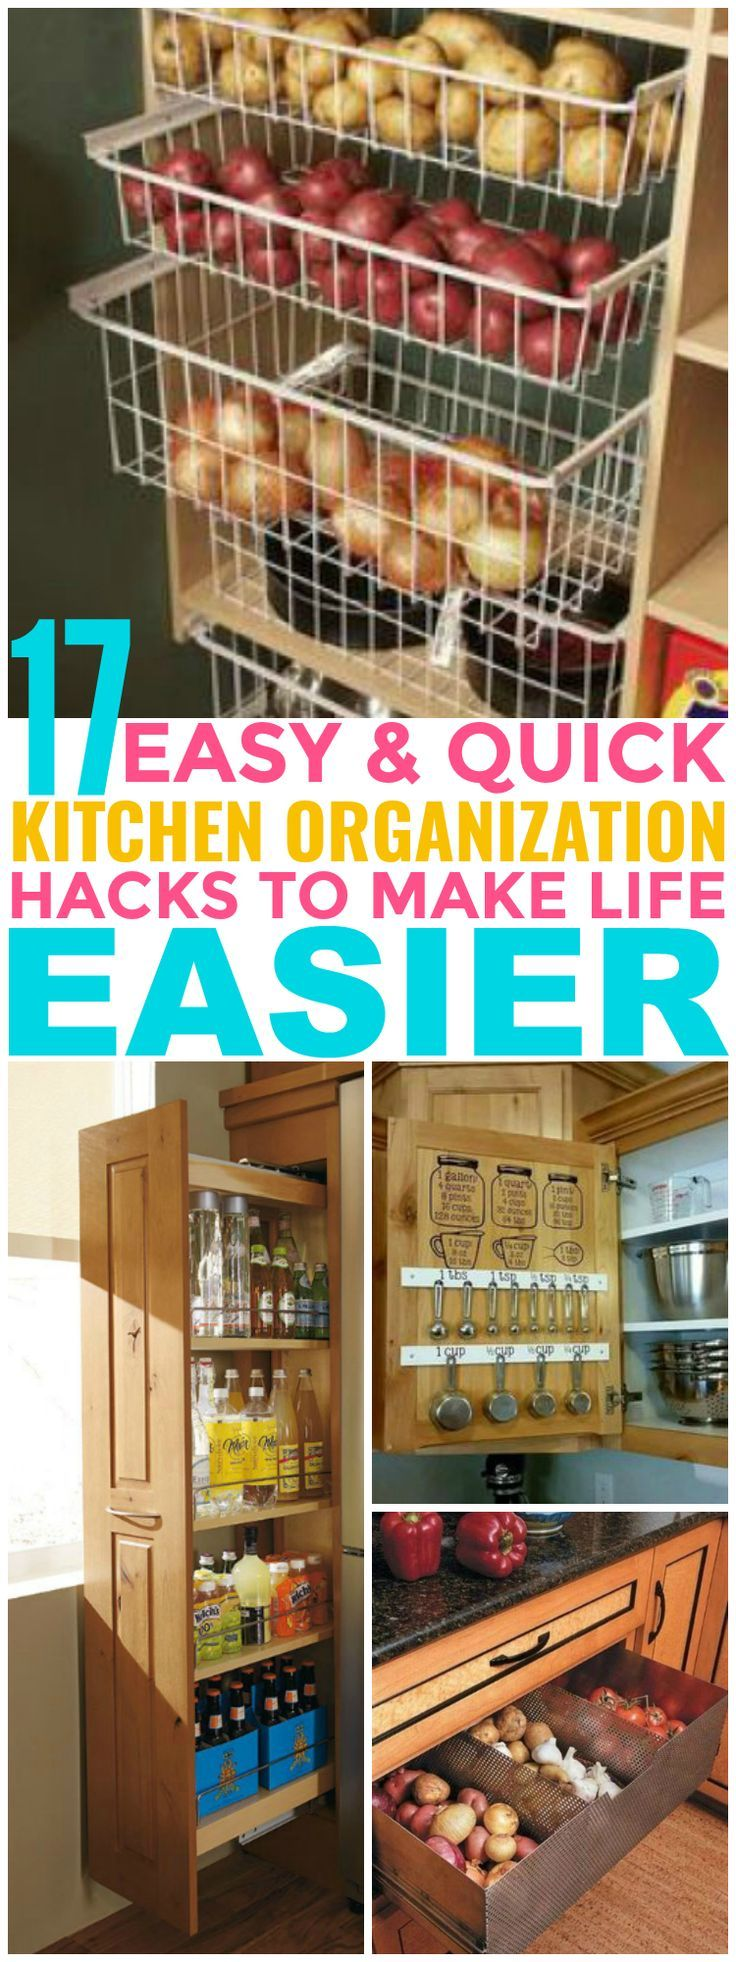 These 17 Hacks Are Totally AWESOME! I can't believe all these ways I can organize my vegetables and kitchen supplies!